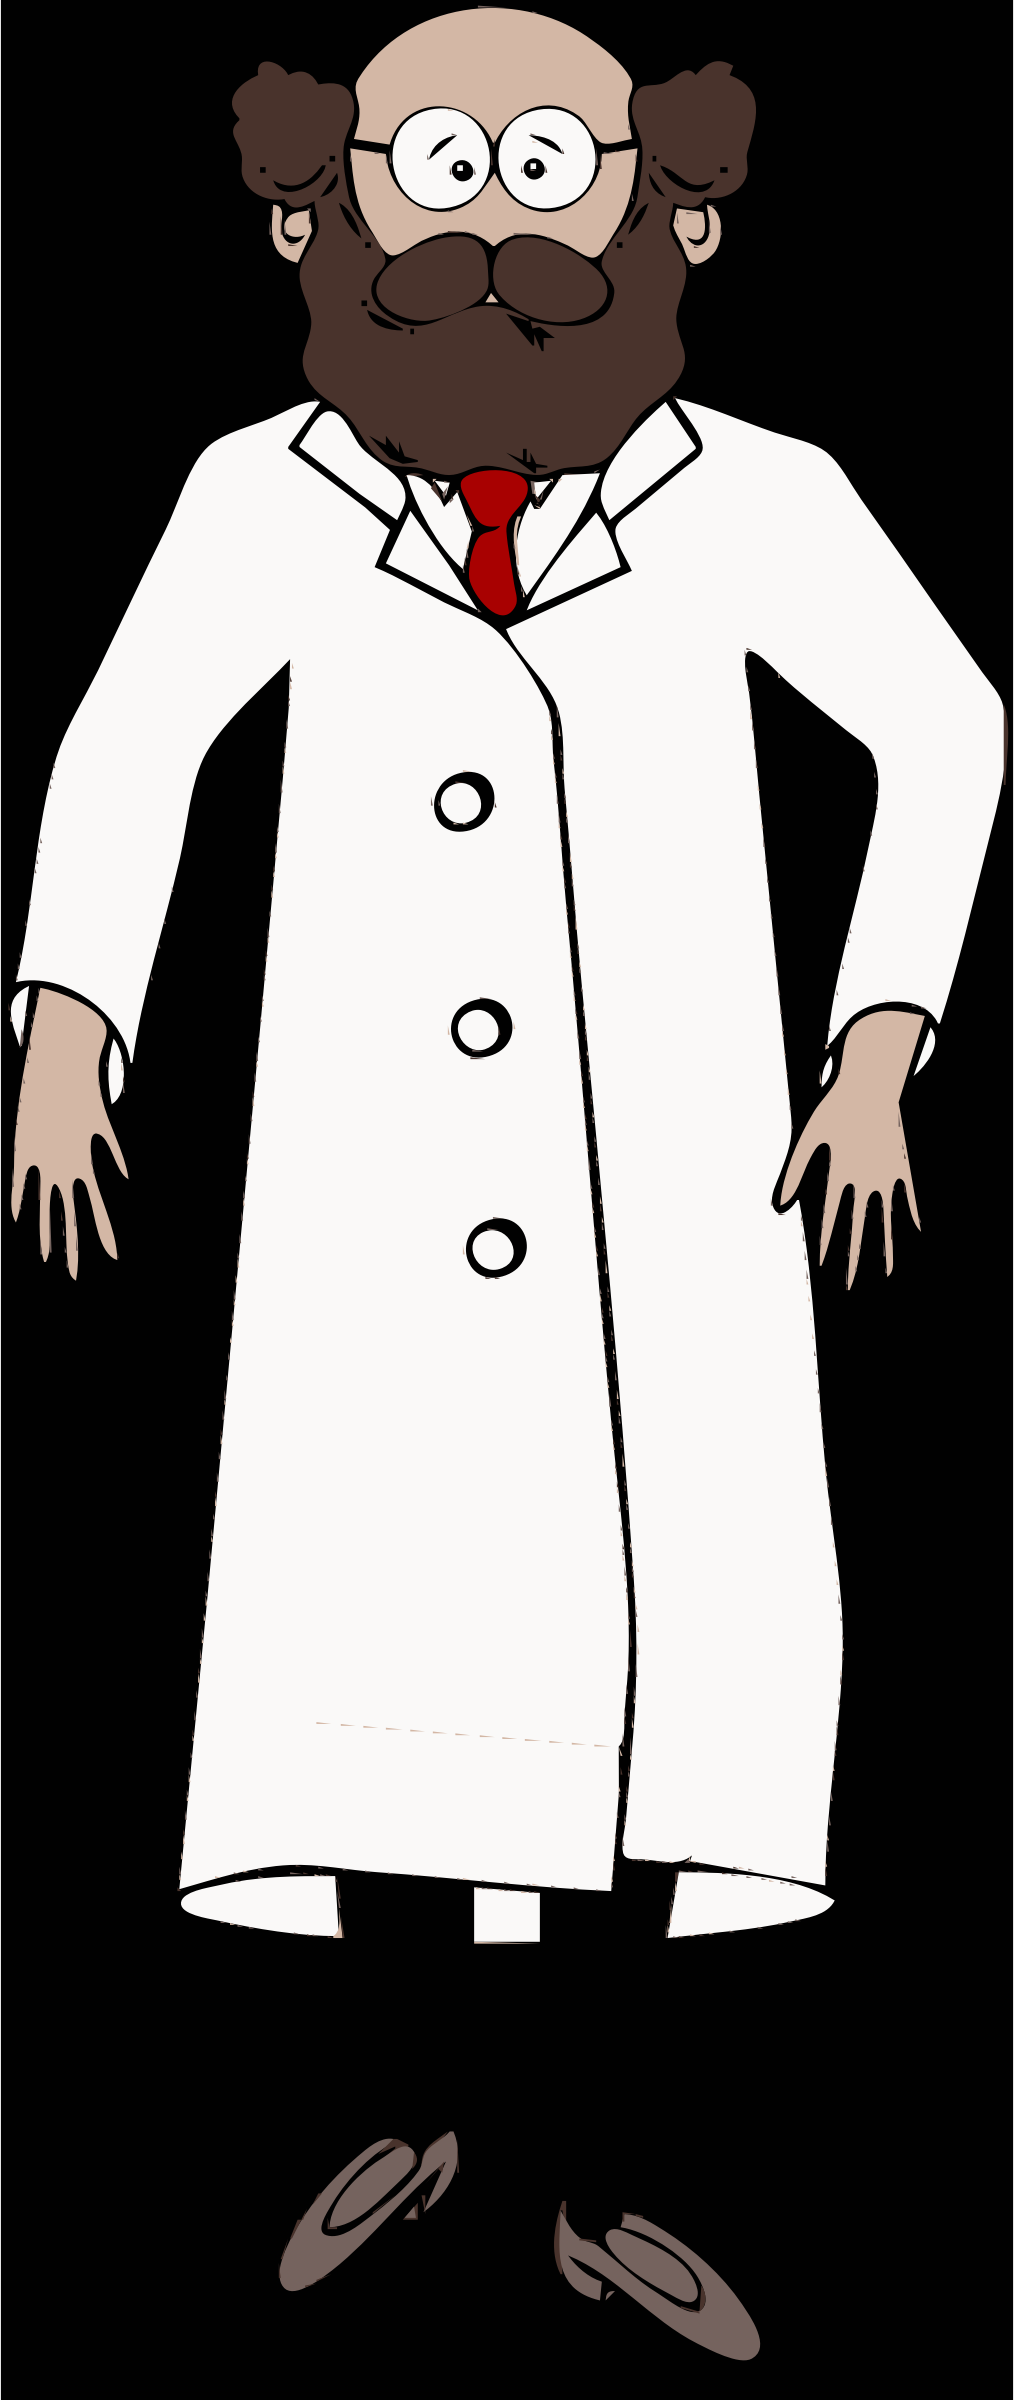 lab coat worn by scientist with brown beard by barnheartowl